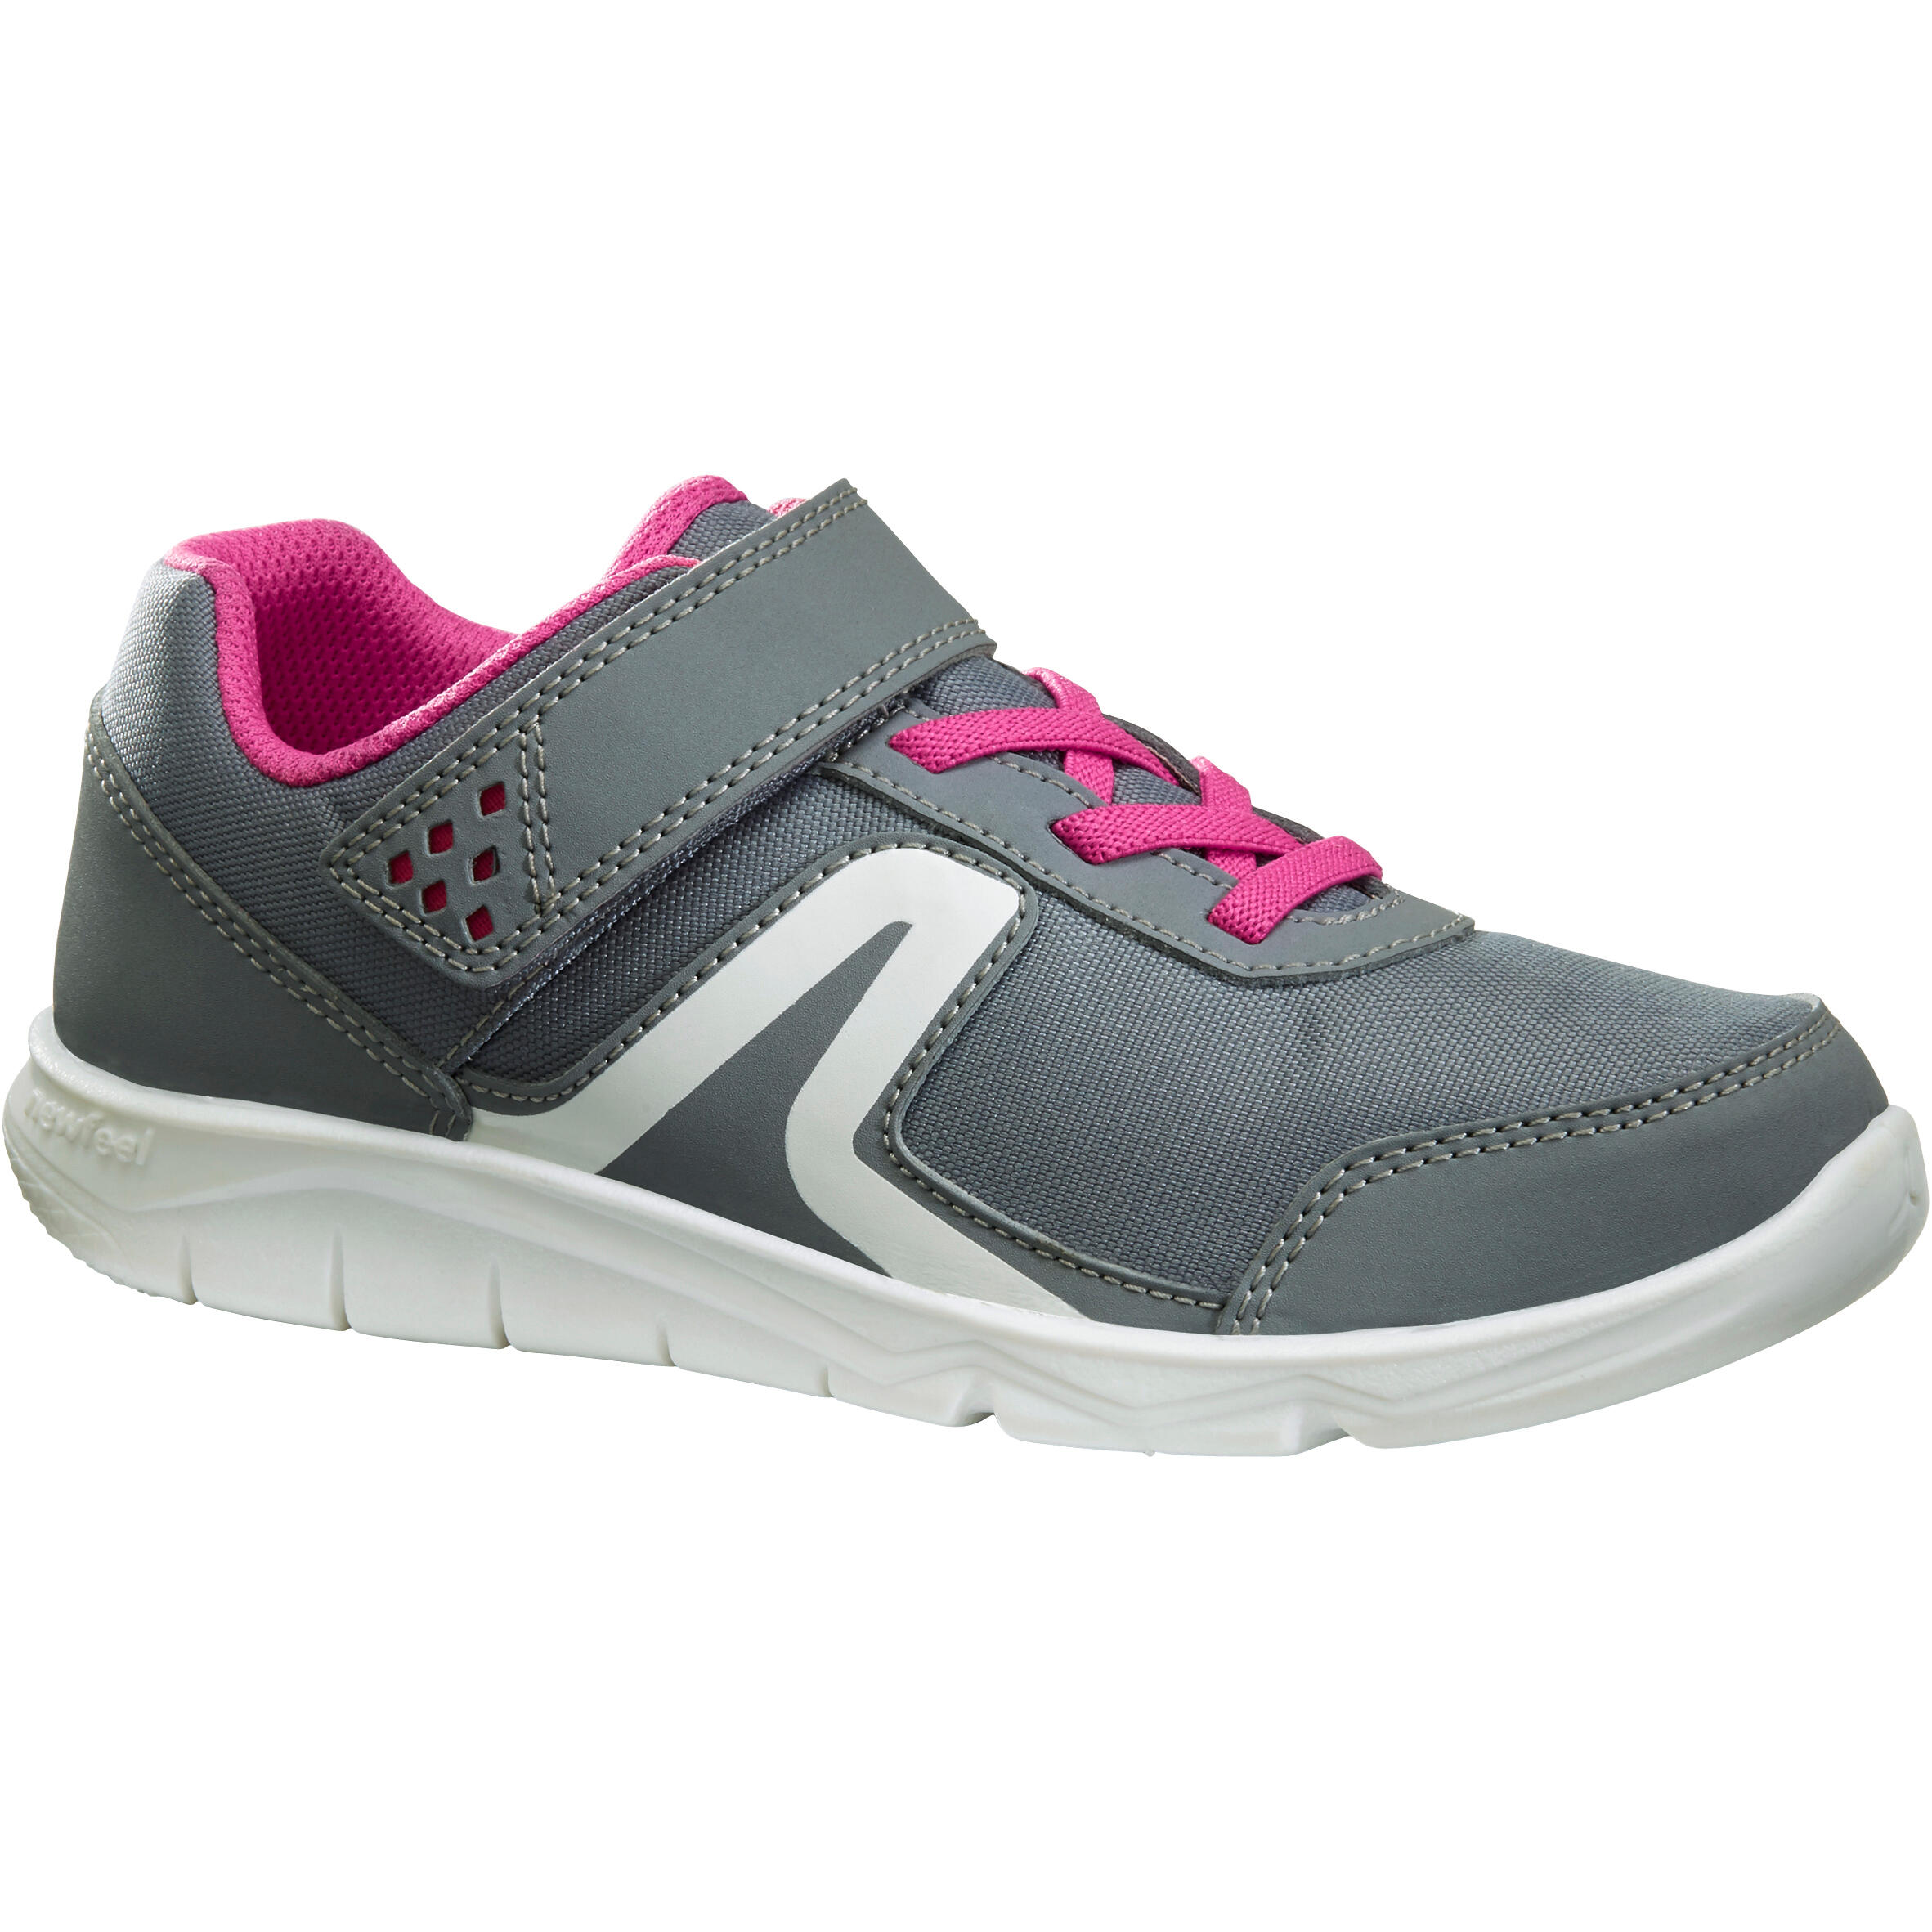 Kids Sports Shoes|Affordable Shoes For